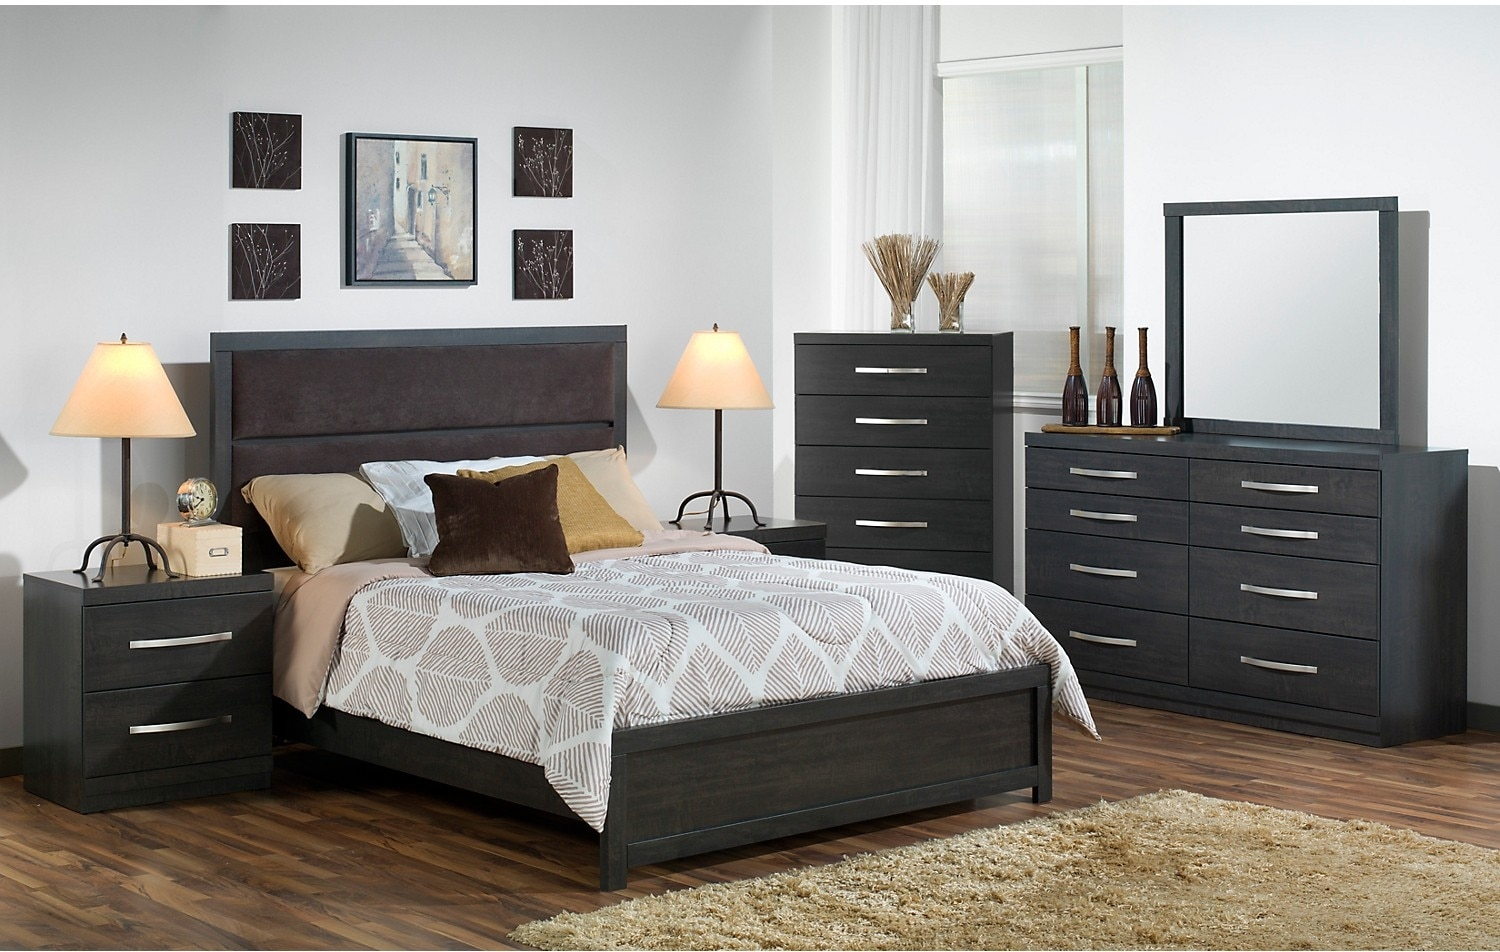 Bedroom Furniture - Willowdale King 6-Piece Bedroom Package